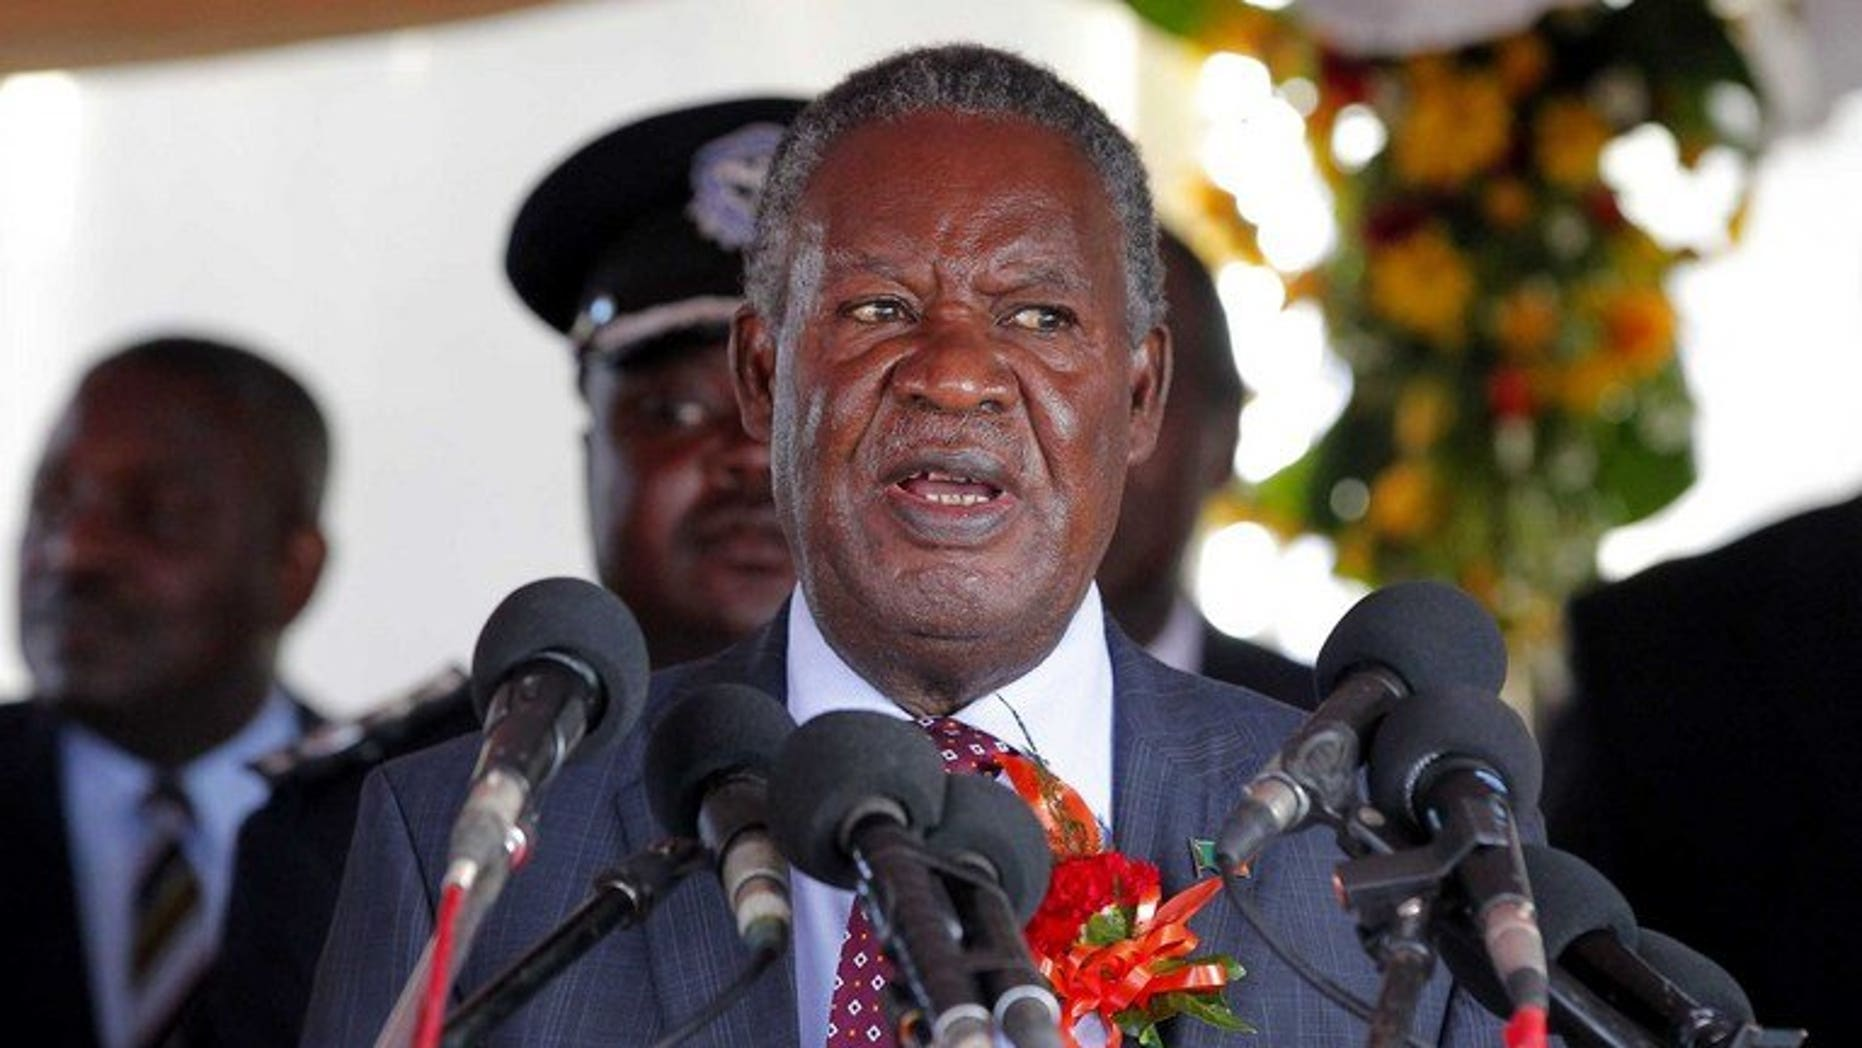 Zambian President Michael Sata speaks in Victoria Falls on May 29, 2012. Sata threatened to dissolve parliament and prompt fresh elections, accusing ministers of failing to defend his government from opposition attacks.